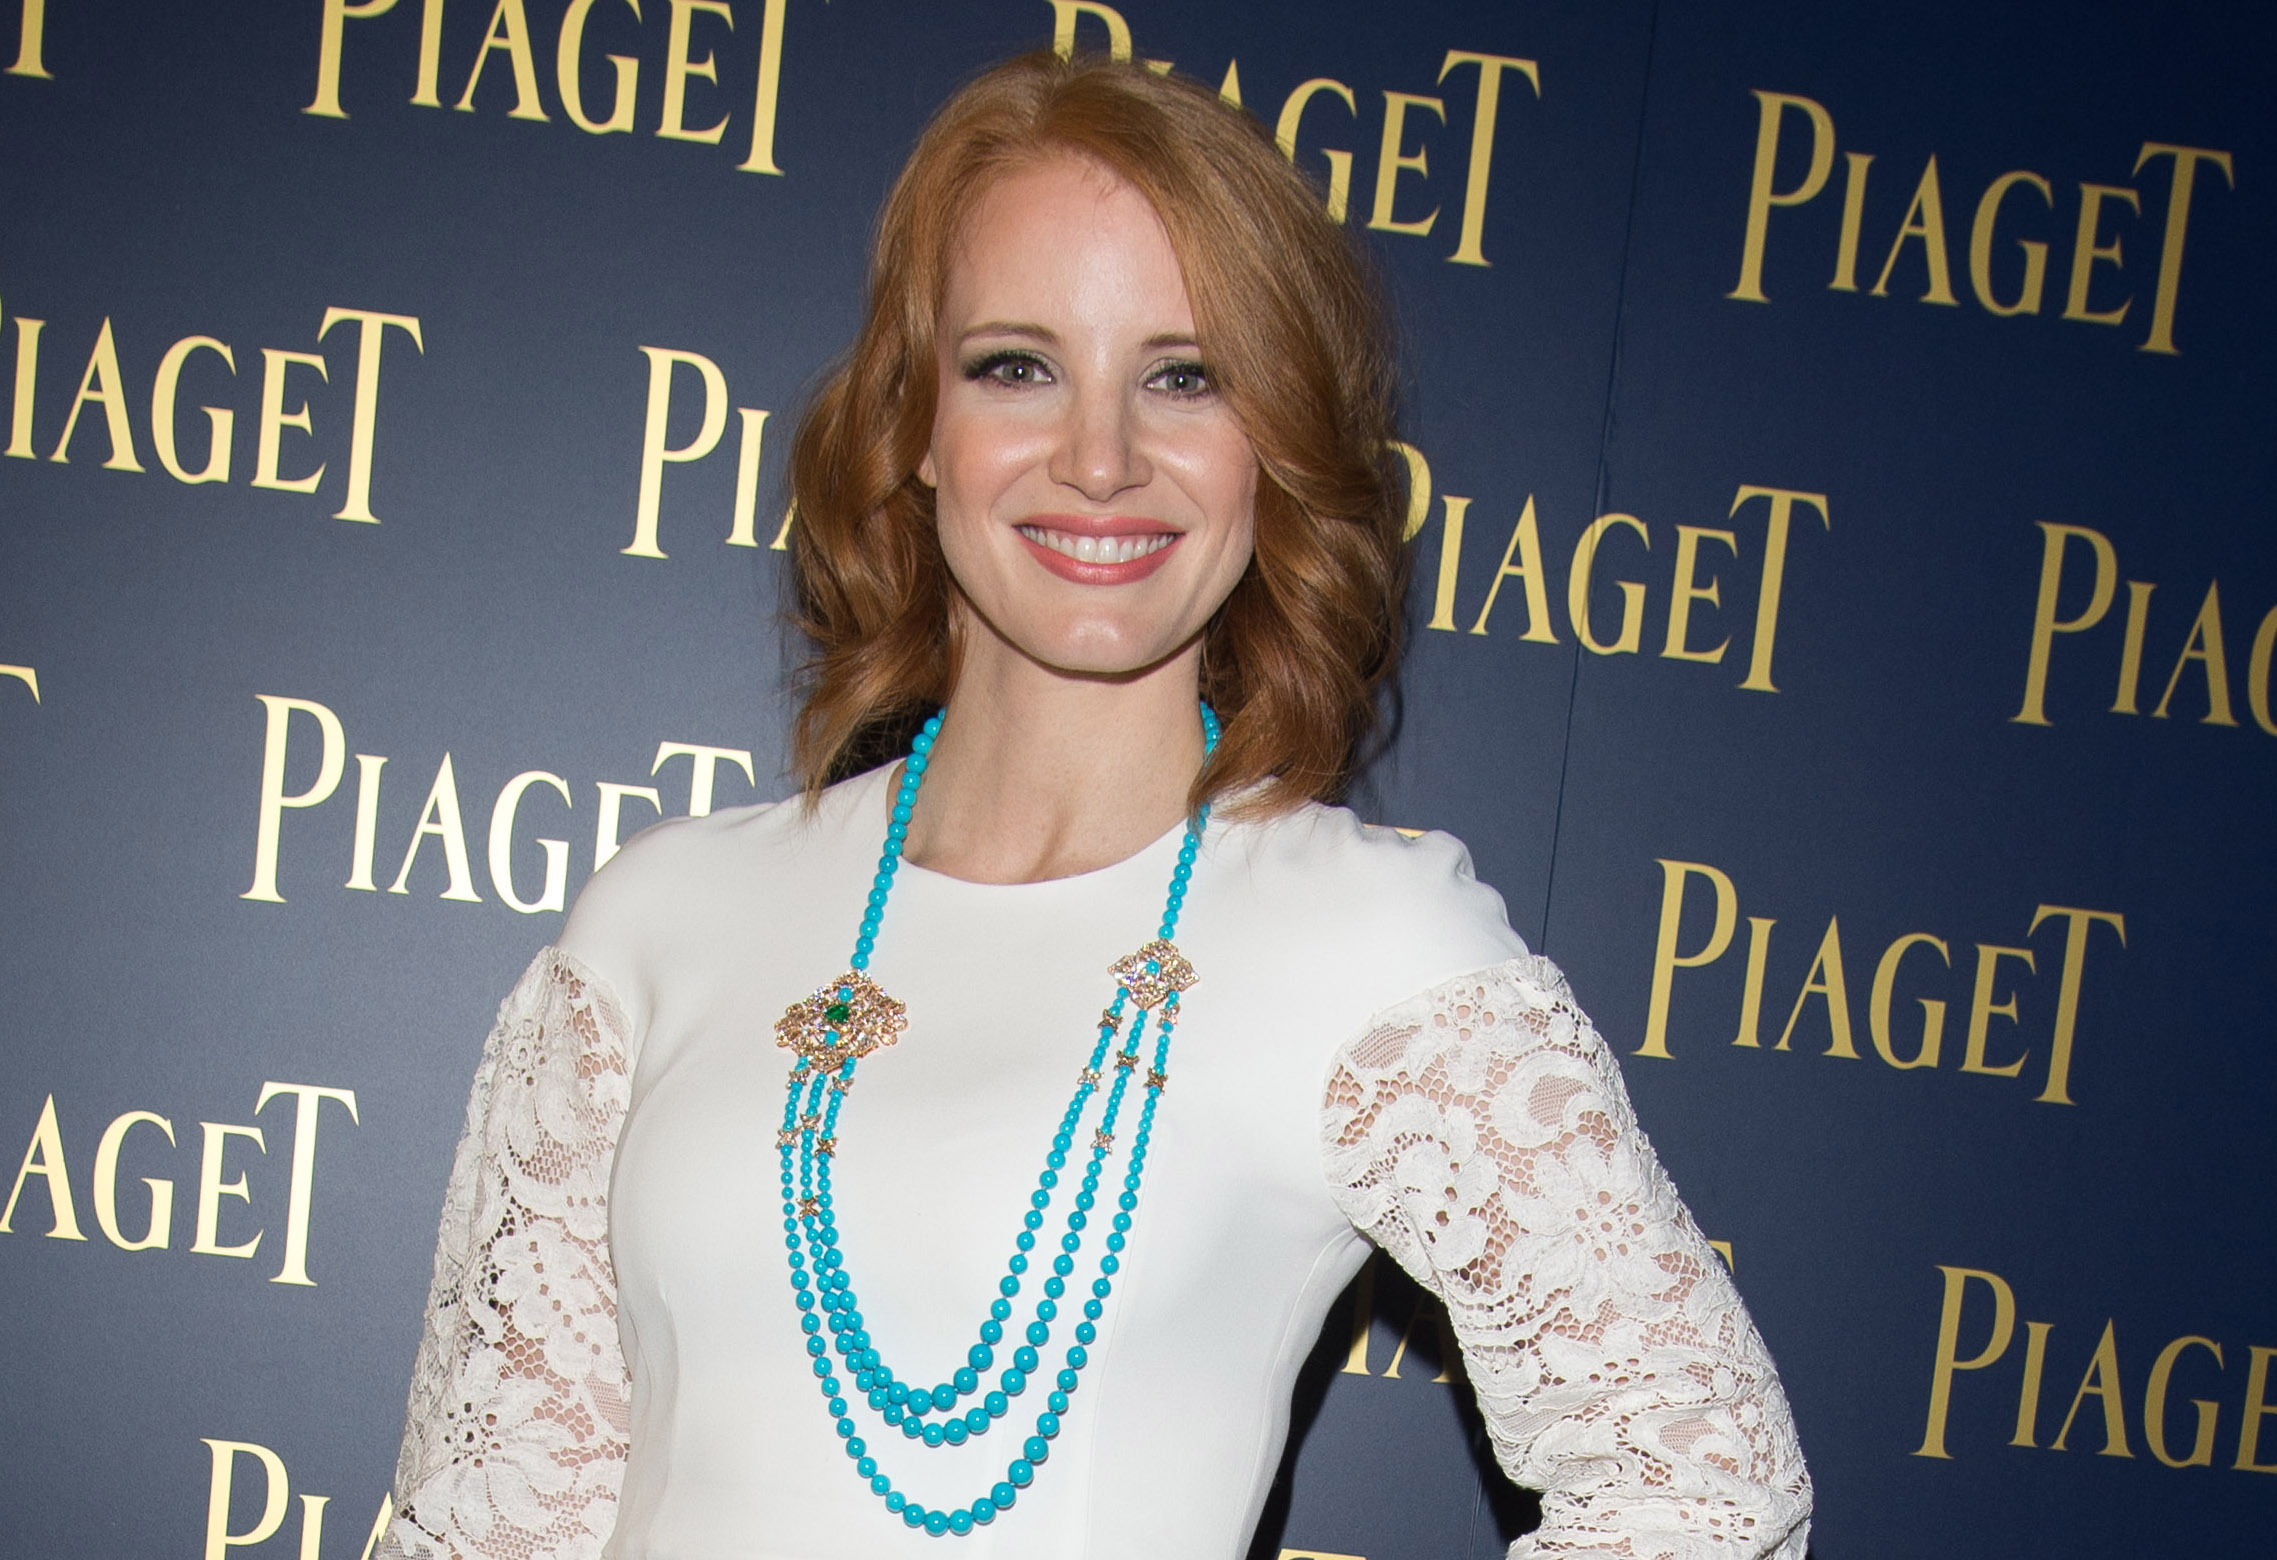 jessica-chastain-in-francesco-scognamiglio-piaget-opening-milan